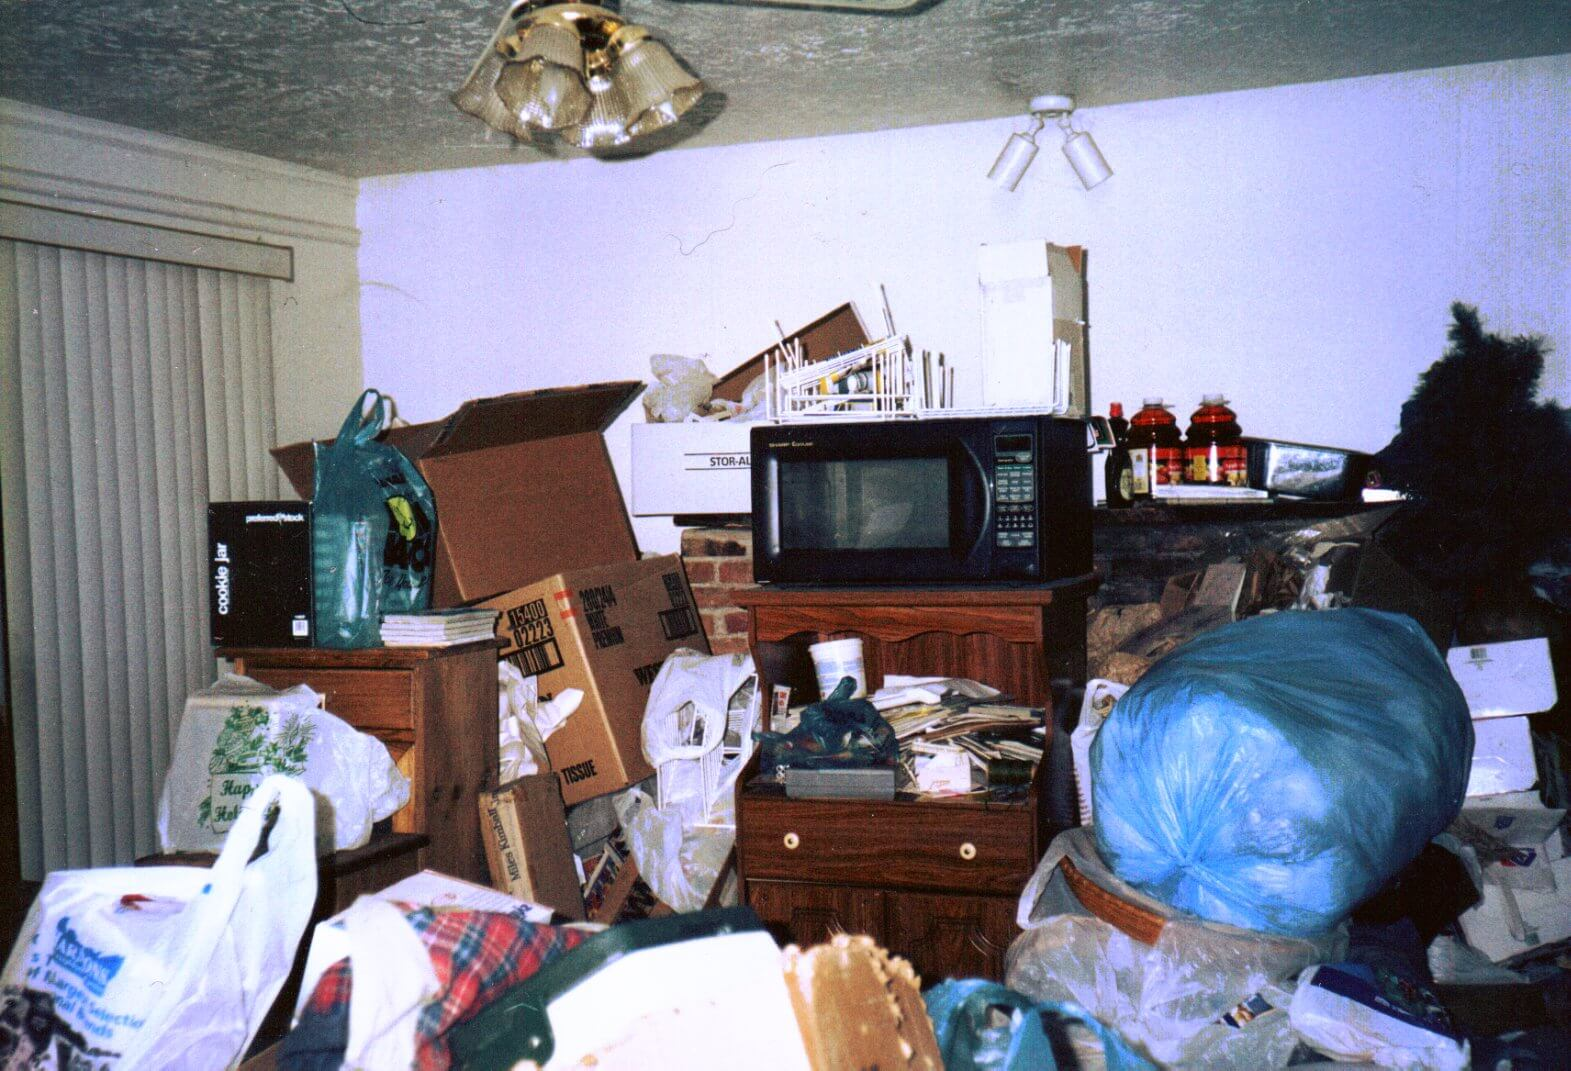 how to help a hoarder - important do's and don'ts | betterhelp